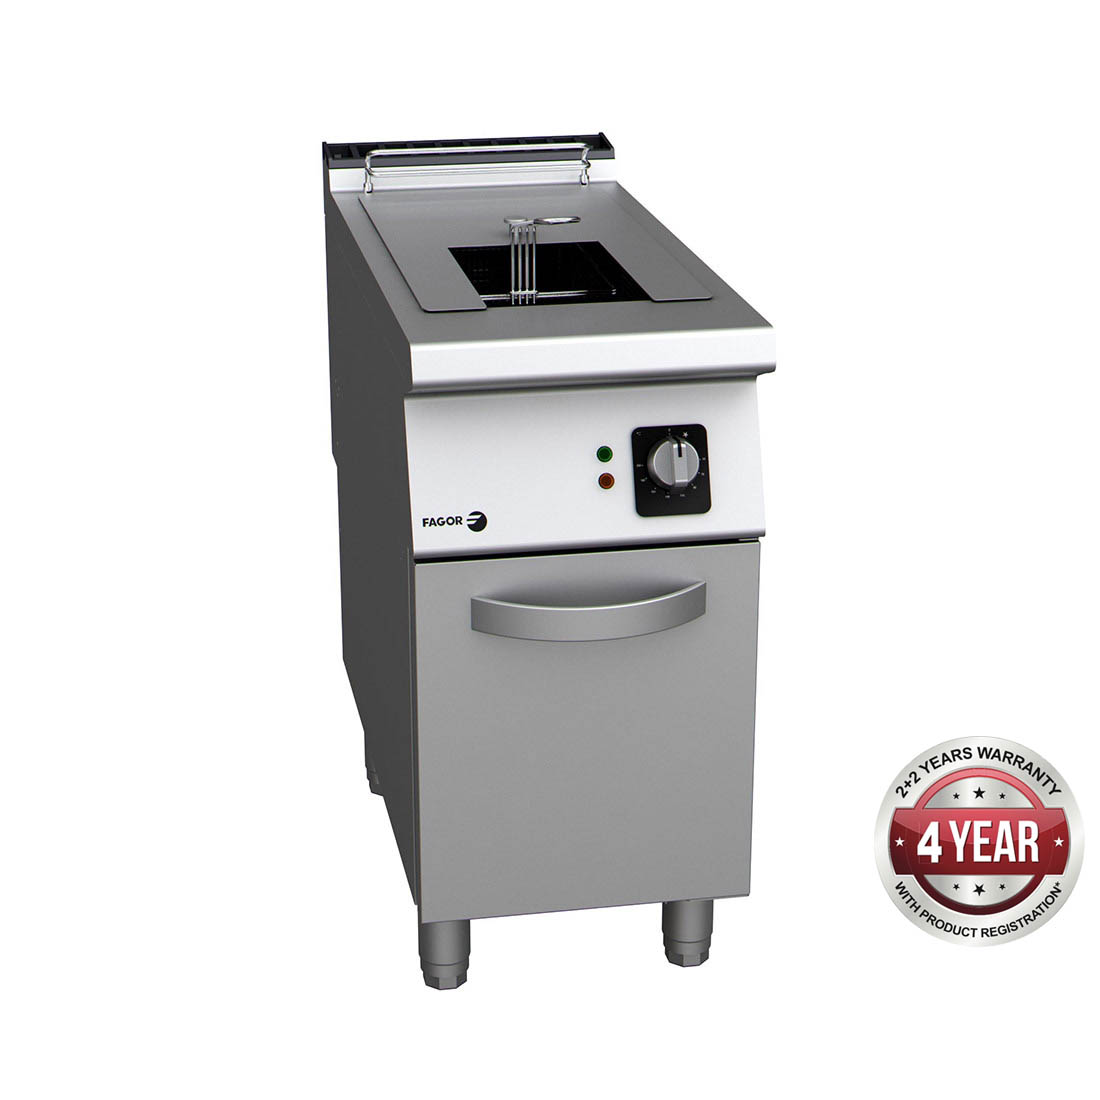 Fagor 900 Series Deep Fat Fryer- F-G9121R